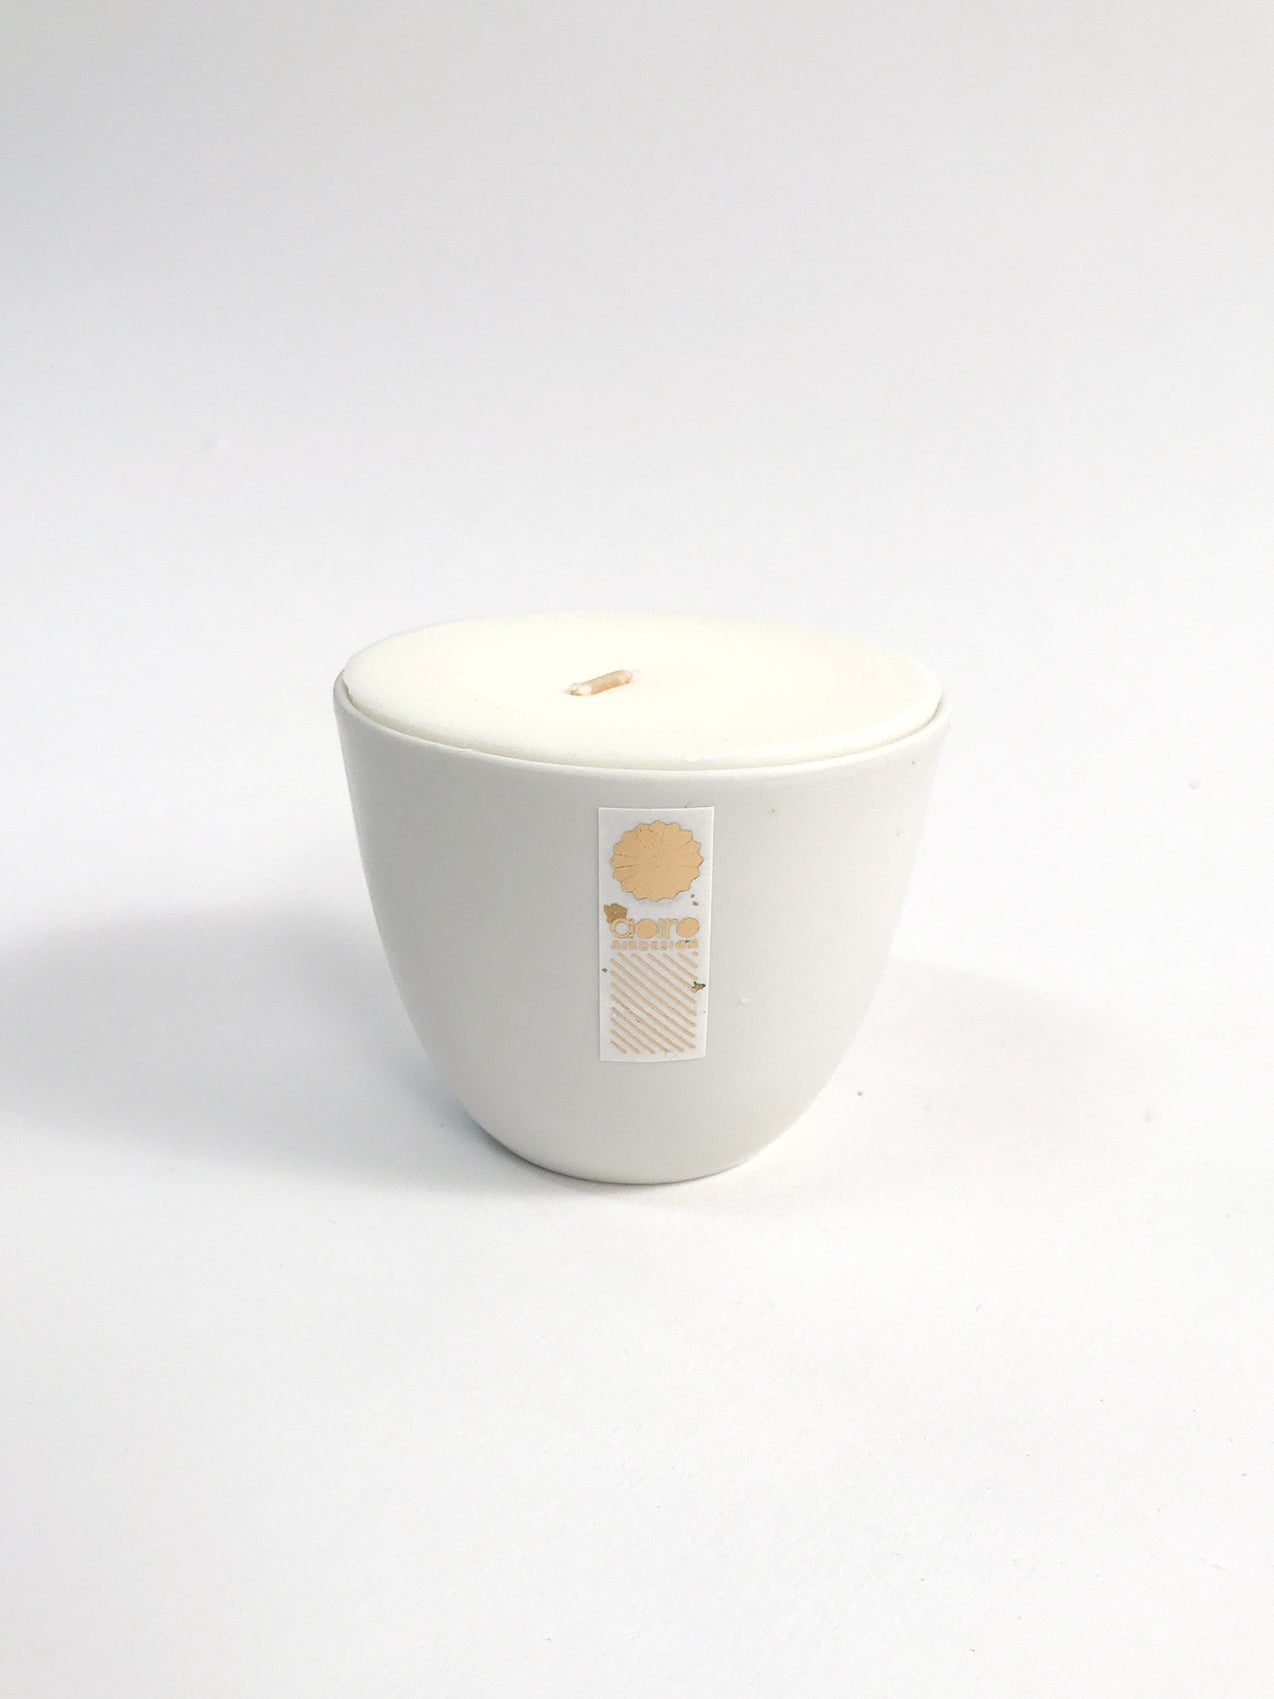 Scented candle, sora-iro